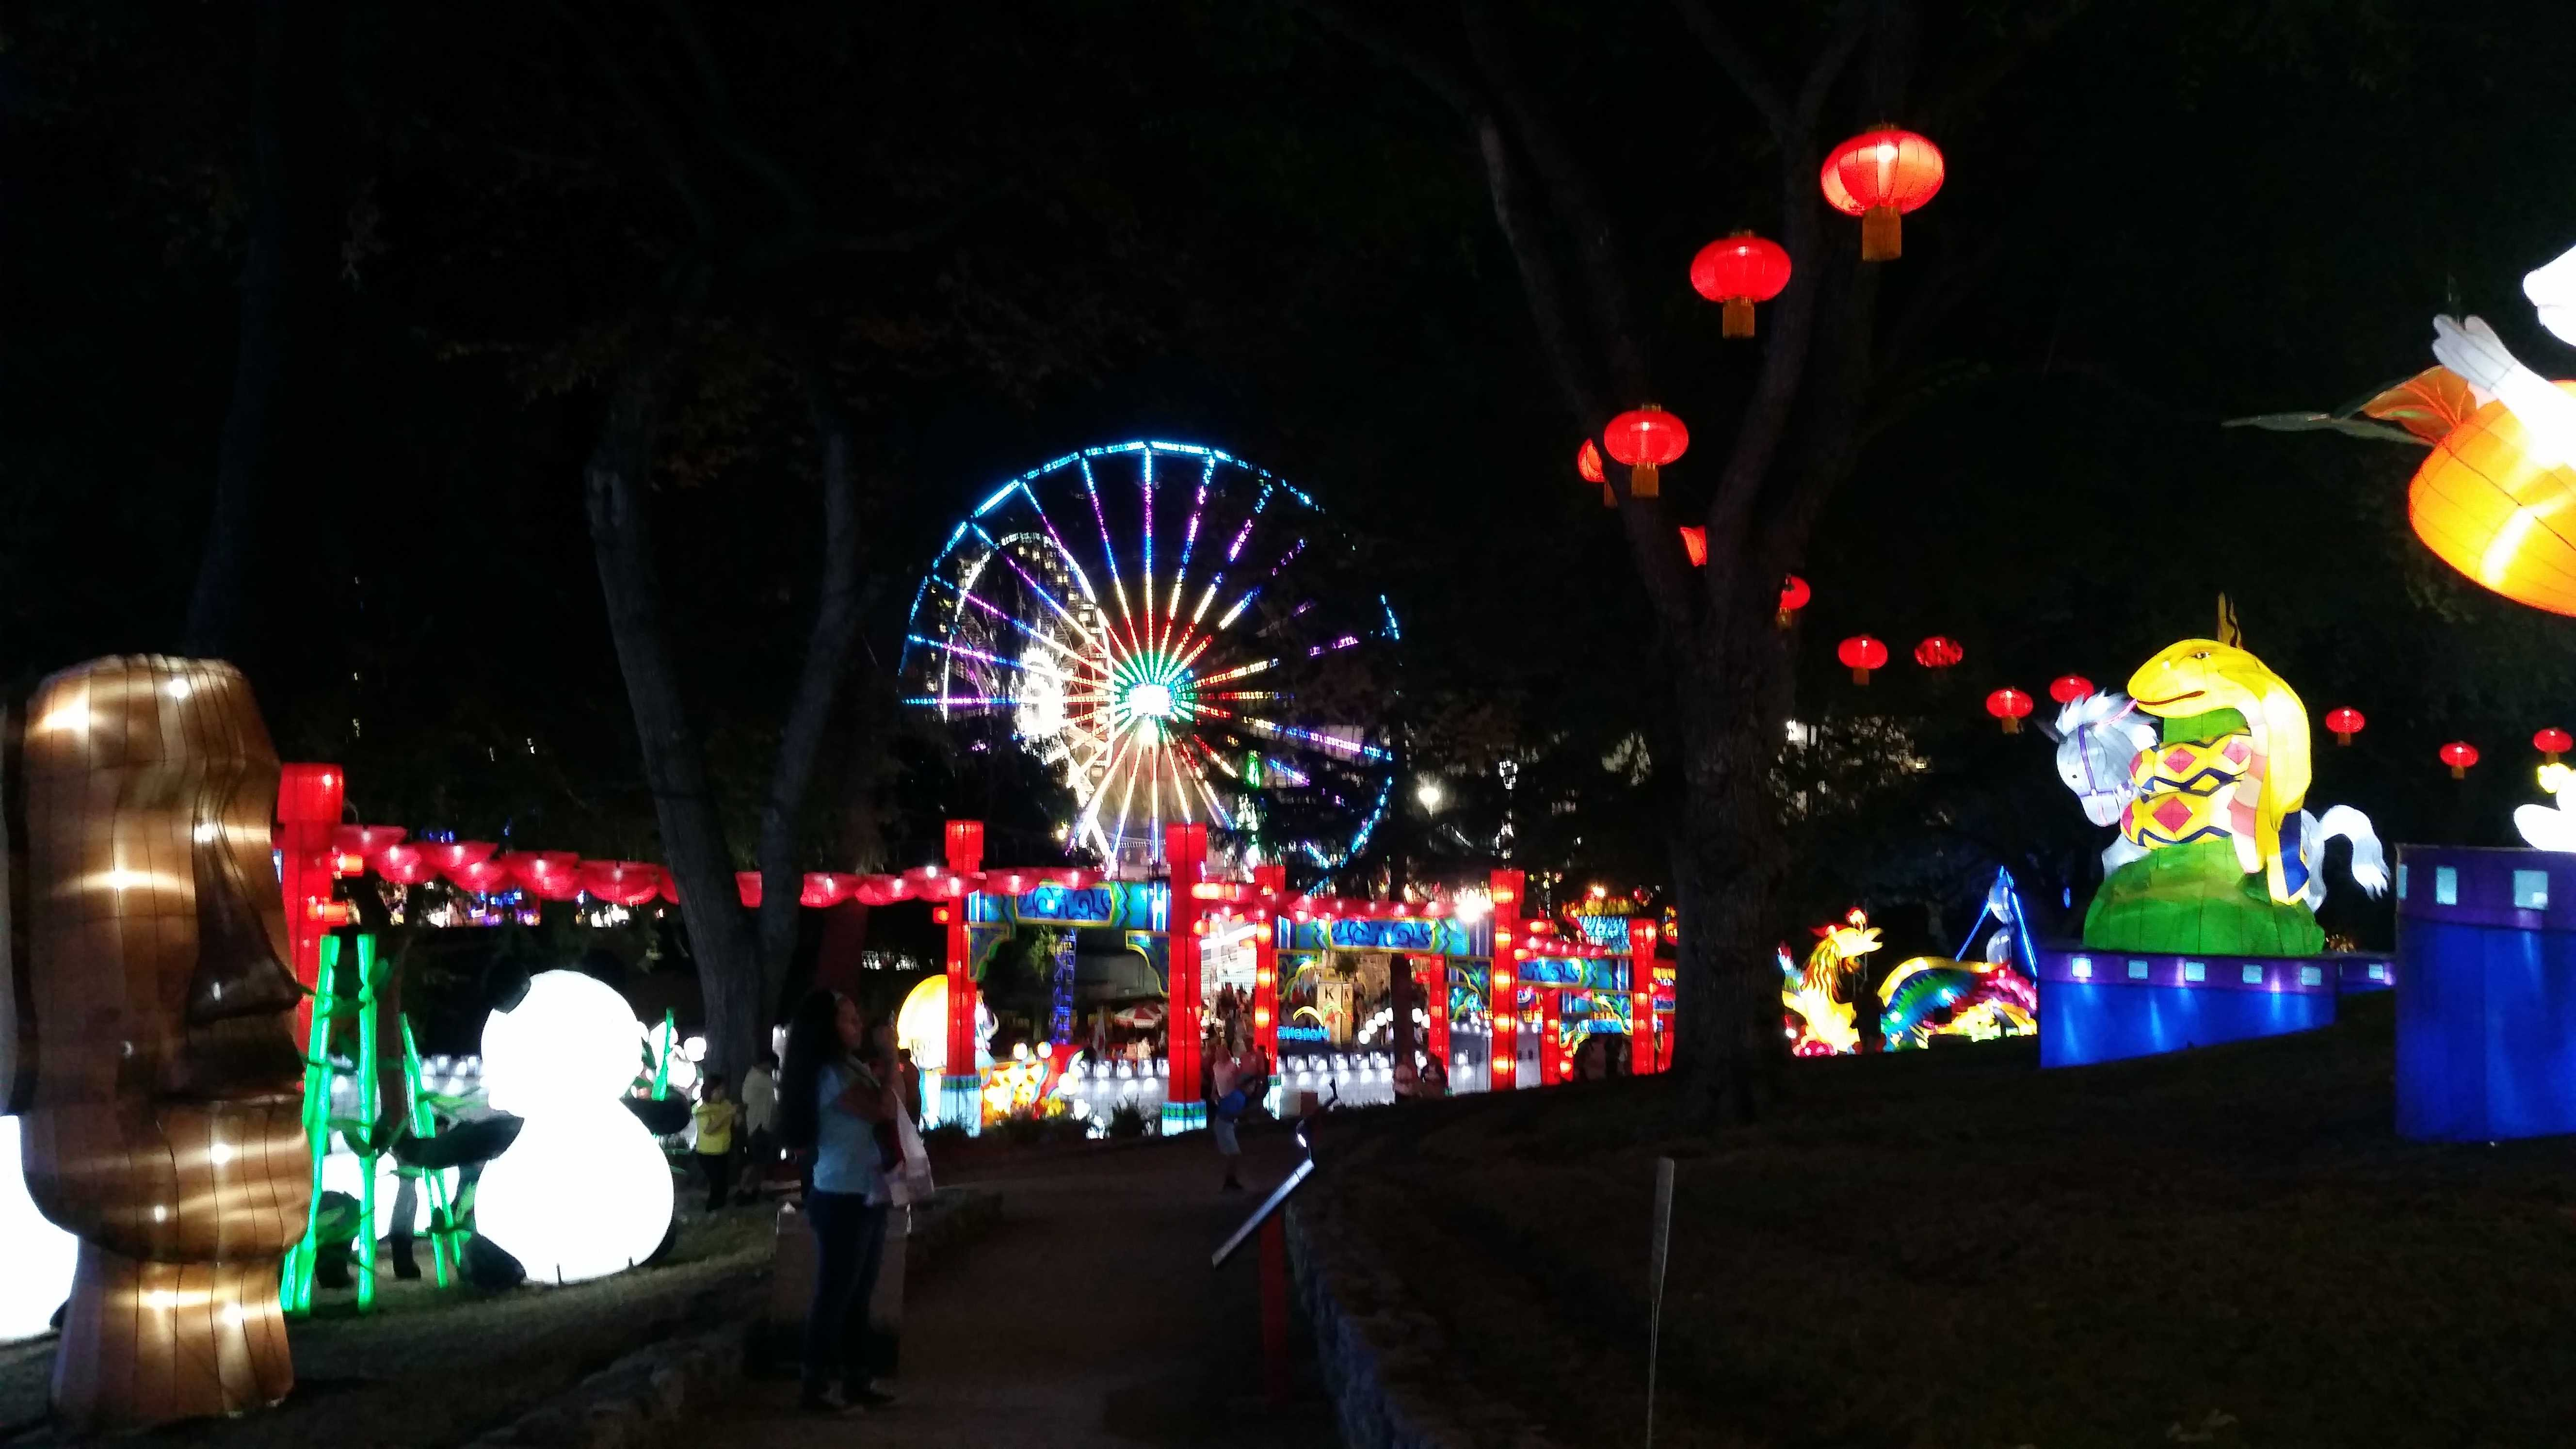 The Los Angeles County Fair lights up at night with the Chinese village lantern exhibit, 'Luminasia'. Visitors from all over Southern California come to the event to have a fun time. Photo credit: Katherine Grijalva